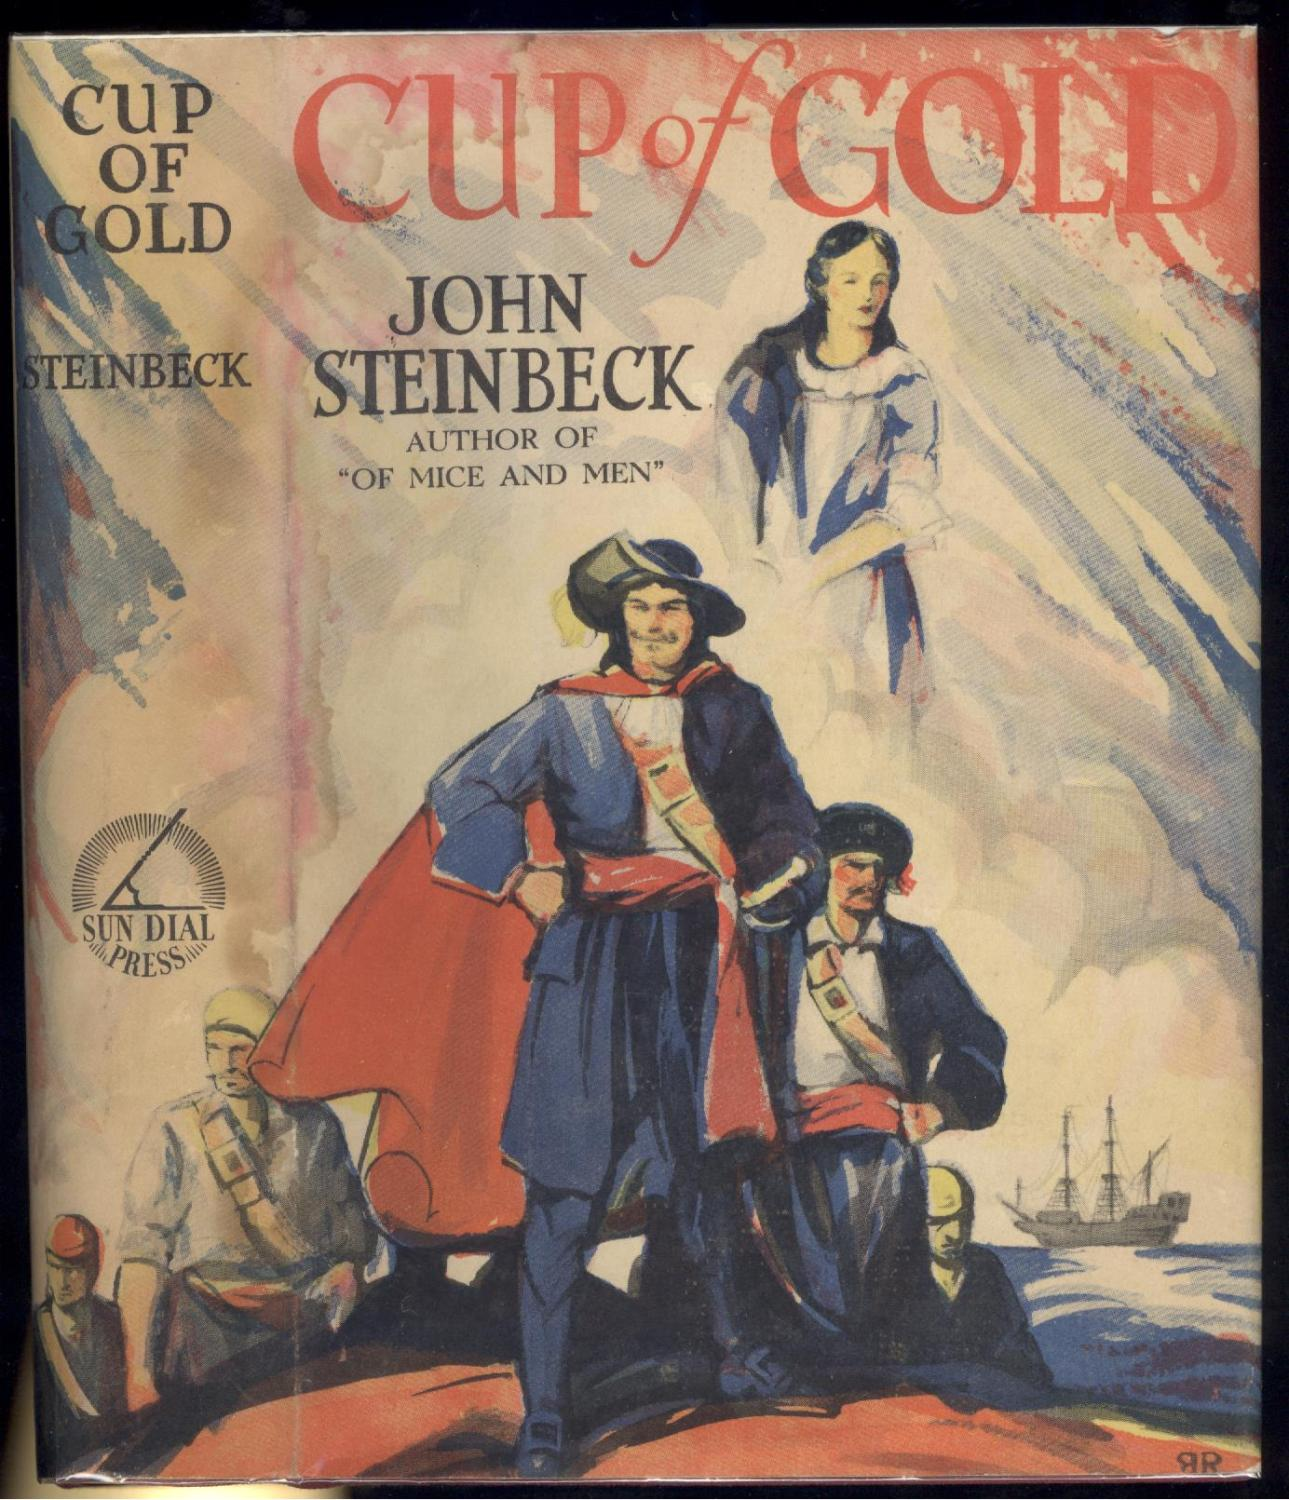 Cup of Gold John Steinbeck